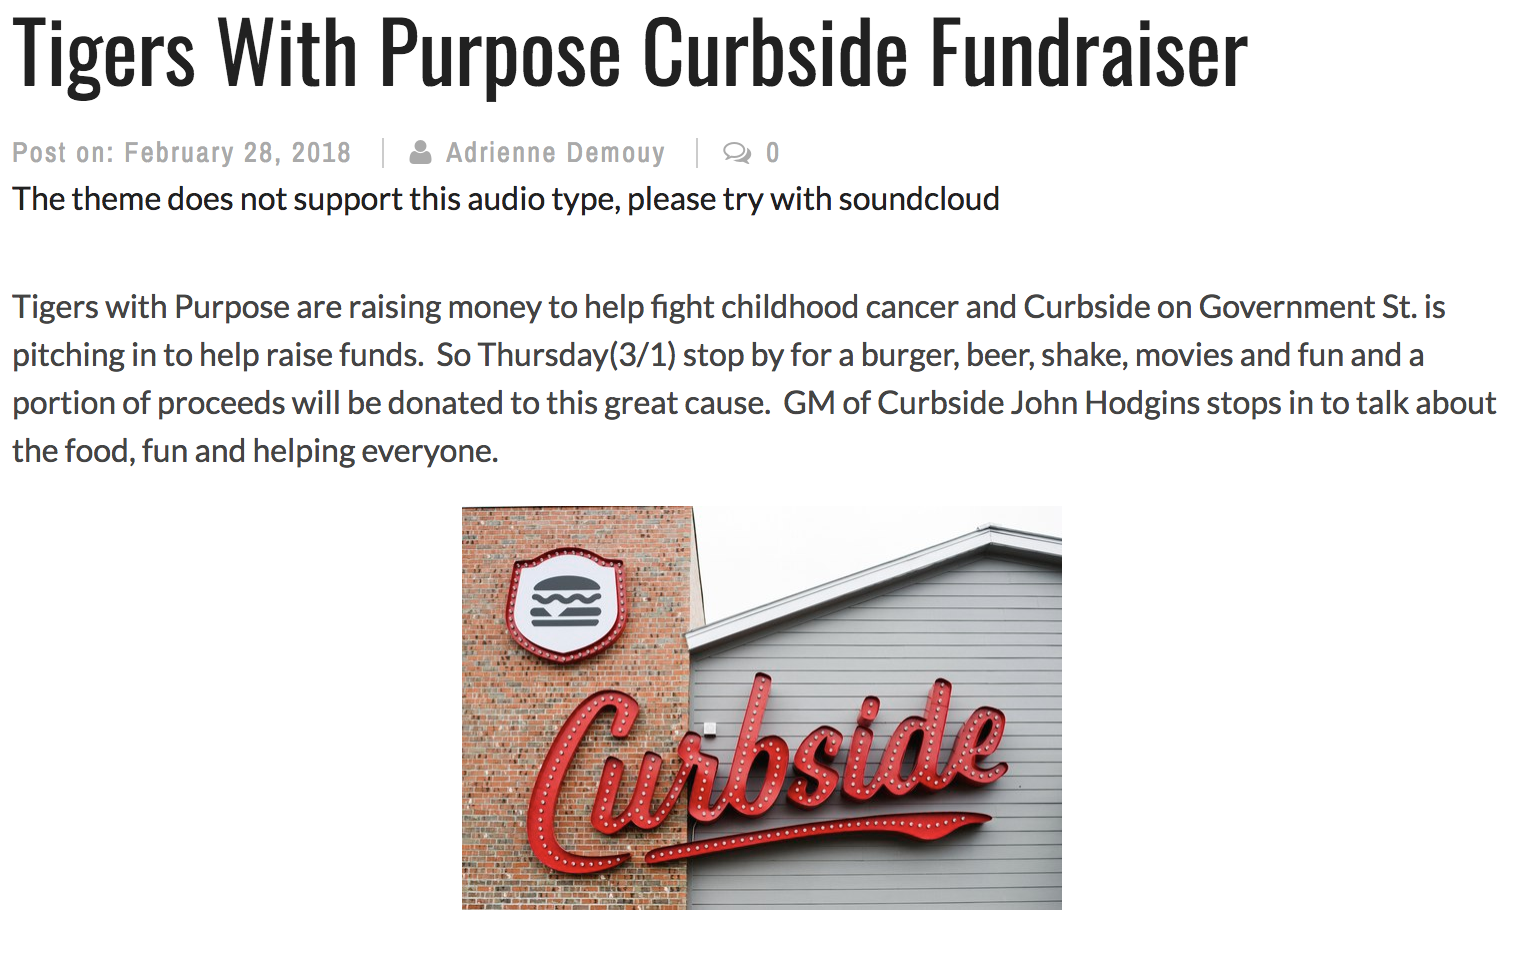 Tigers With Purpose Curbside Fundraiser